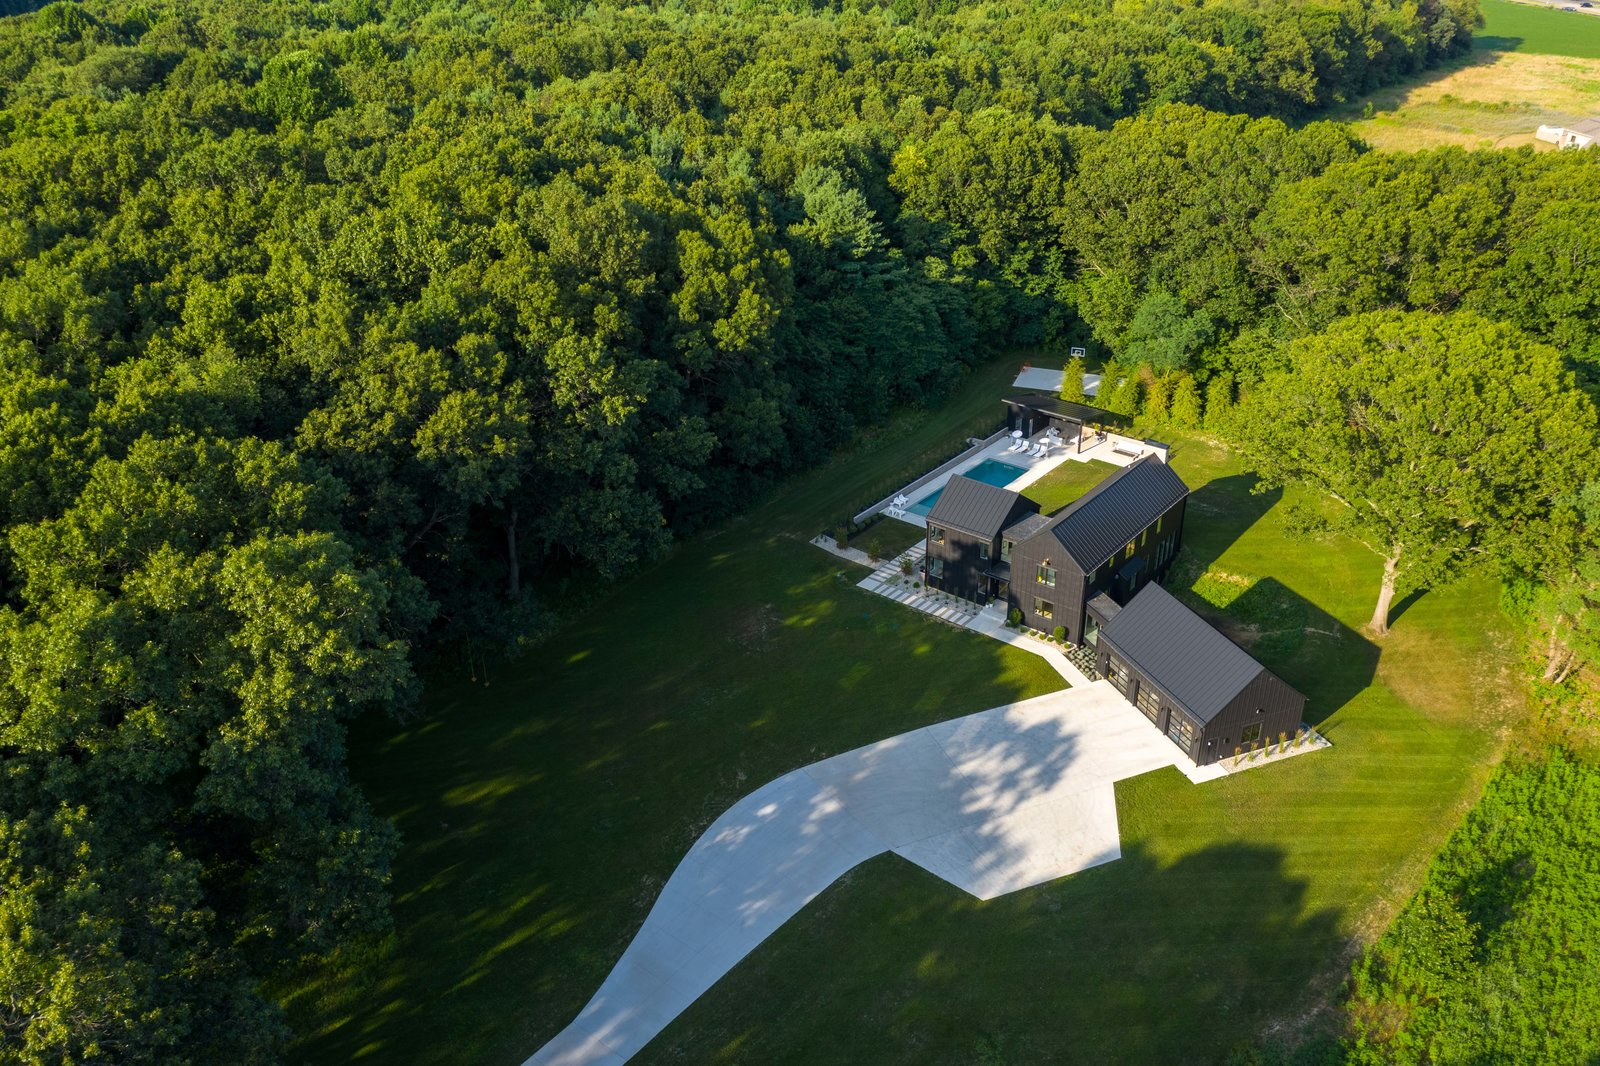 Exterior, A-Frame RoofLine, Metal Roof Material, and House Building Type An aerial shot of the property showing the house nestled in a clearing. The dense wooded surroundings inspired the couple to prioritize exterior views in the home's design  Photo 3 of 10 in Watch How This Danish-Style Farmhouse Unites a Family With Nature